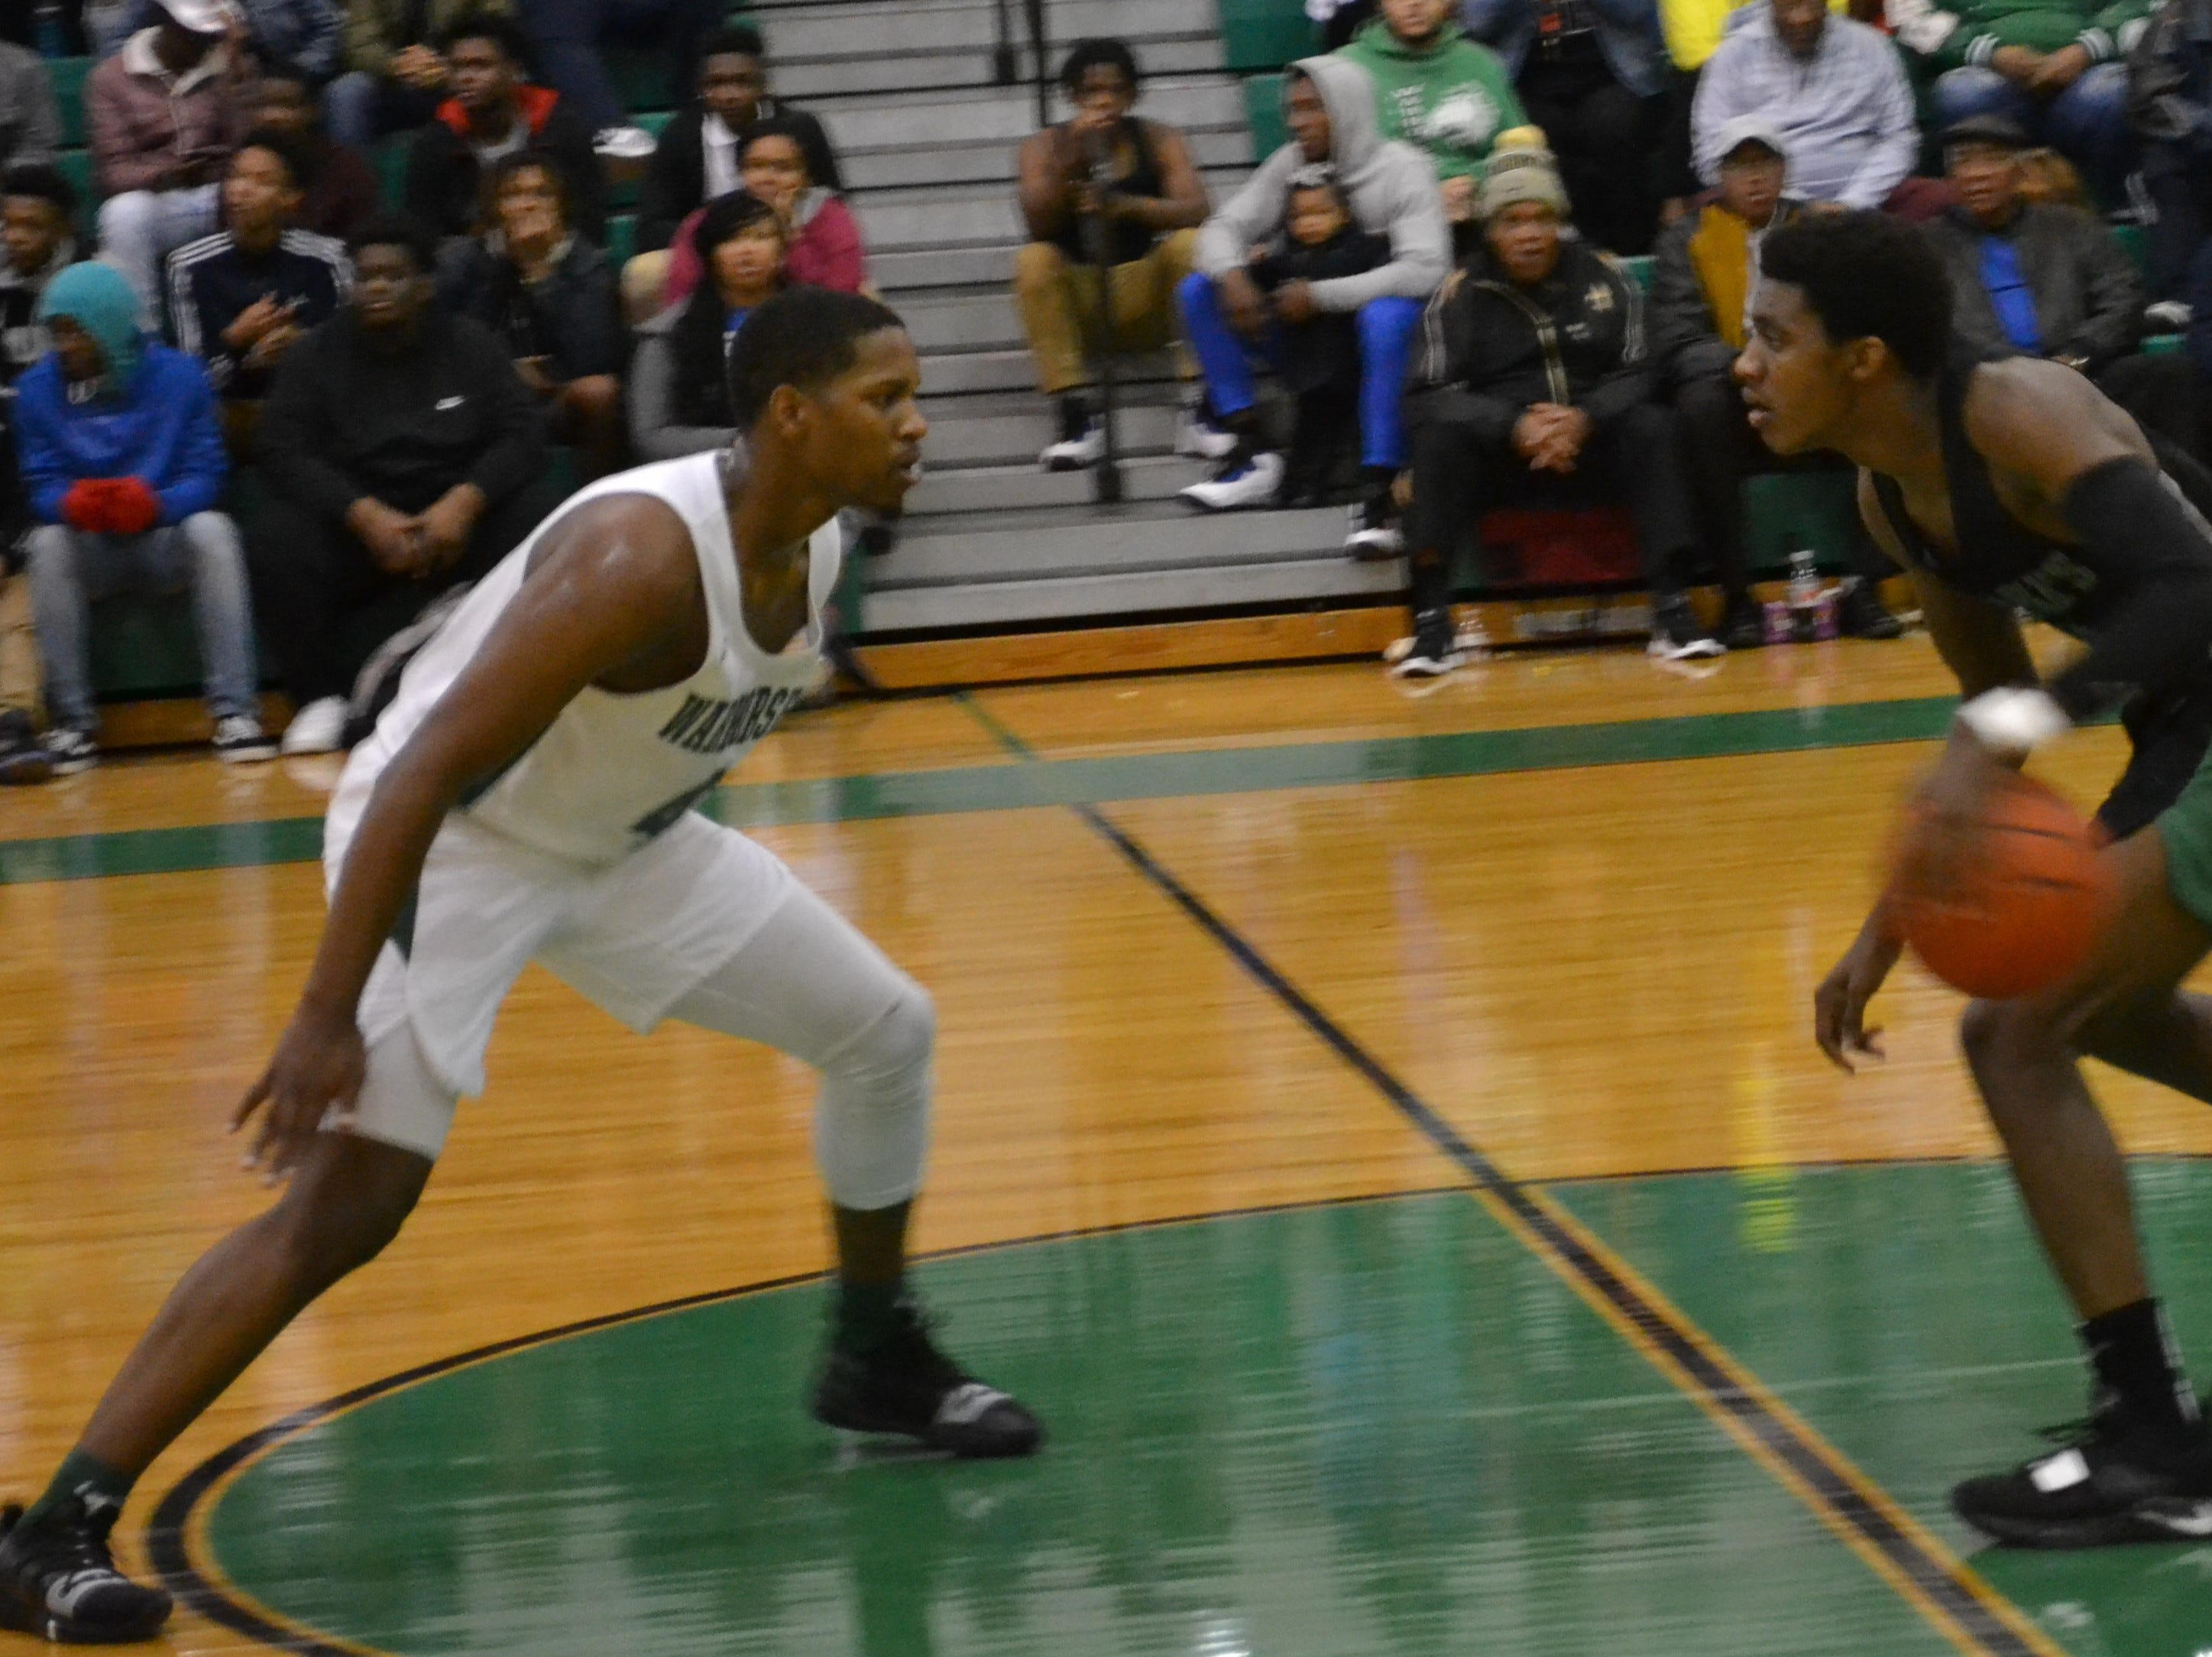 Peabody's Kyron Gibson (4) (left) defends Bossier's Kaalas Roots. The Peabody boys basketball team played the Bossier Bearkats Tuesday night at the Emerald Palace. Peabody got the win 72-67.